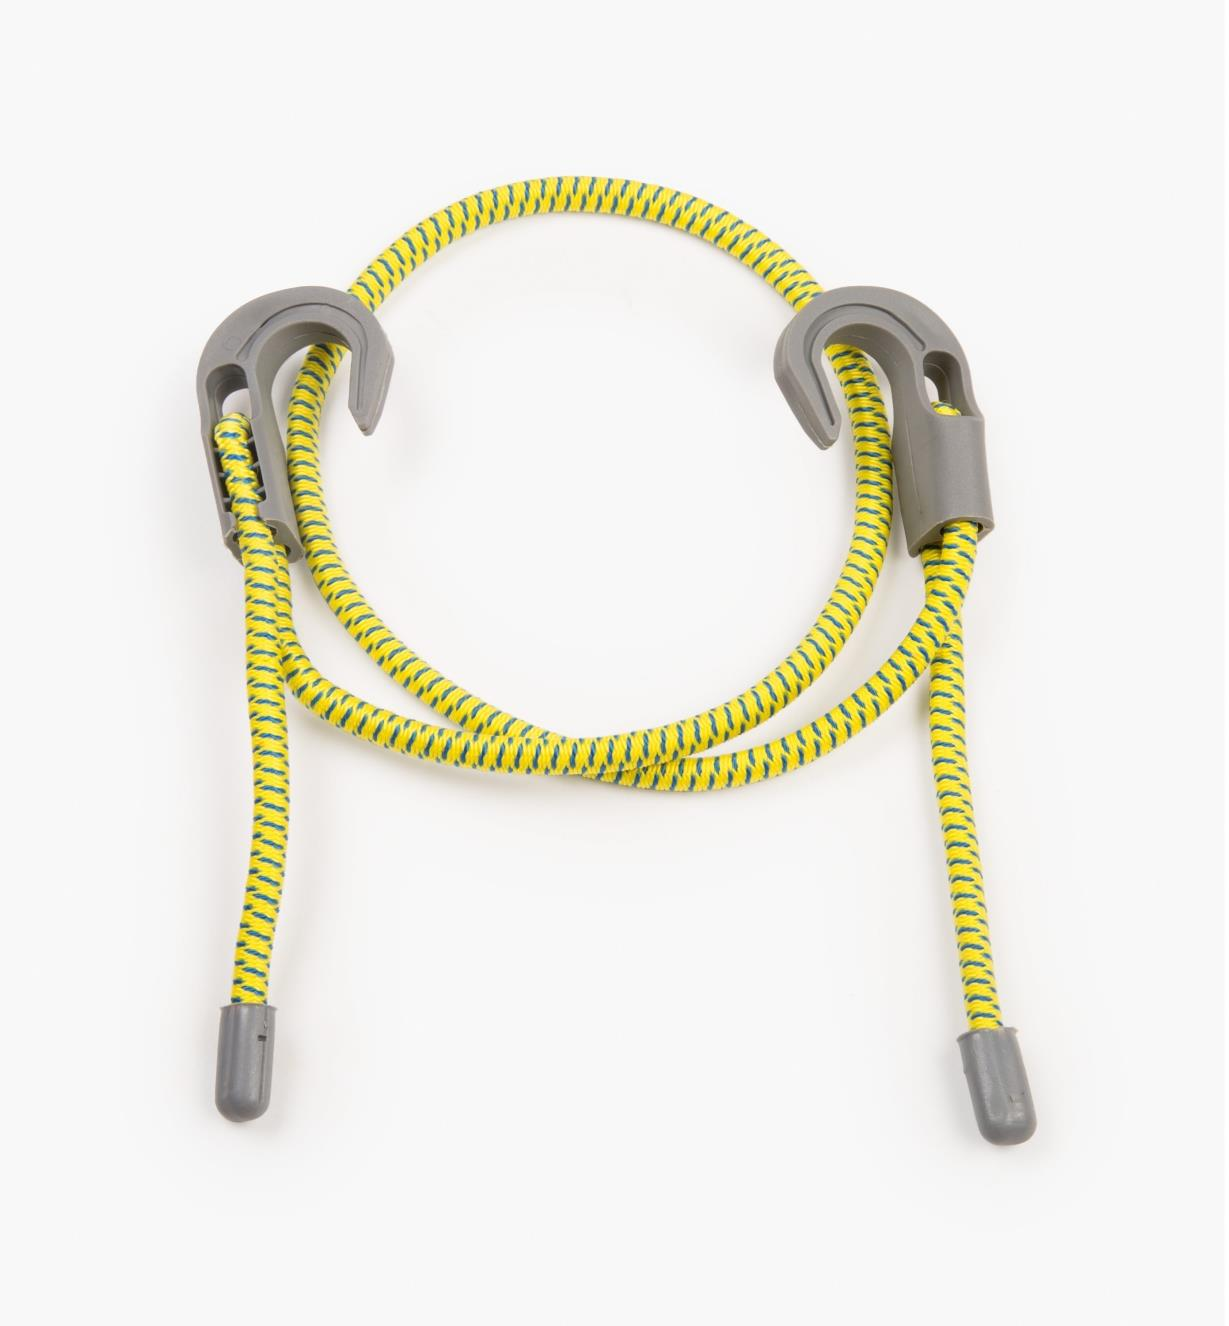 03K7682 - Adjustable Bungee